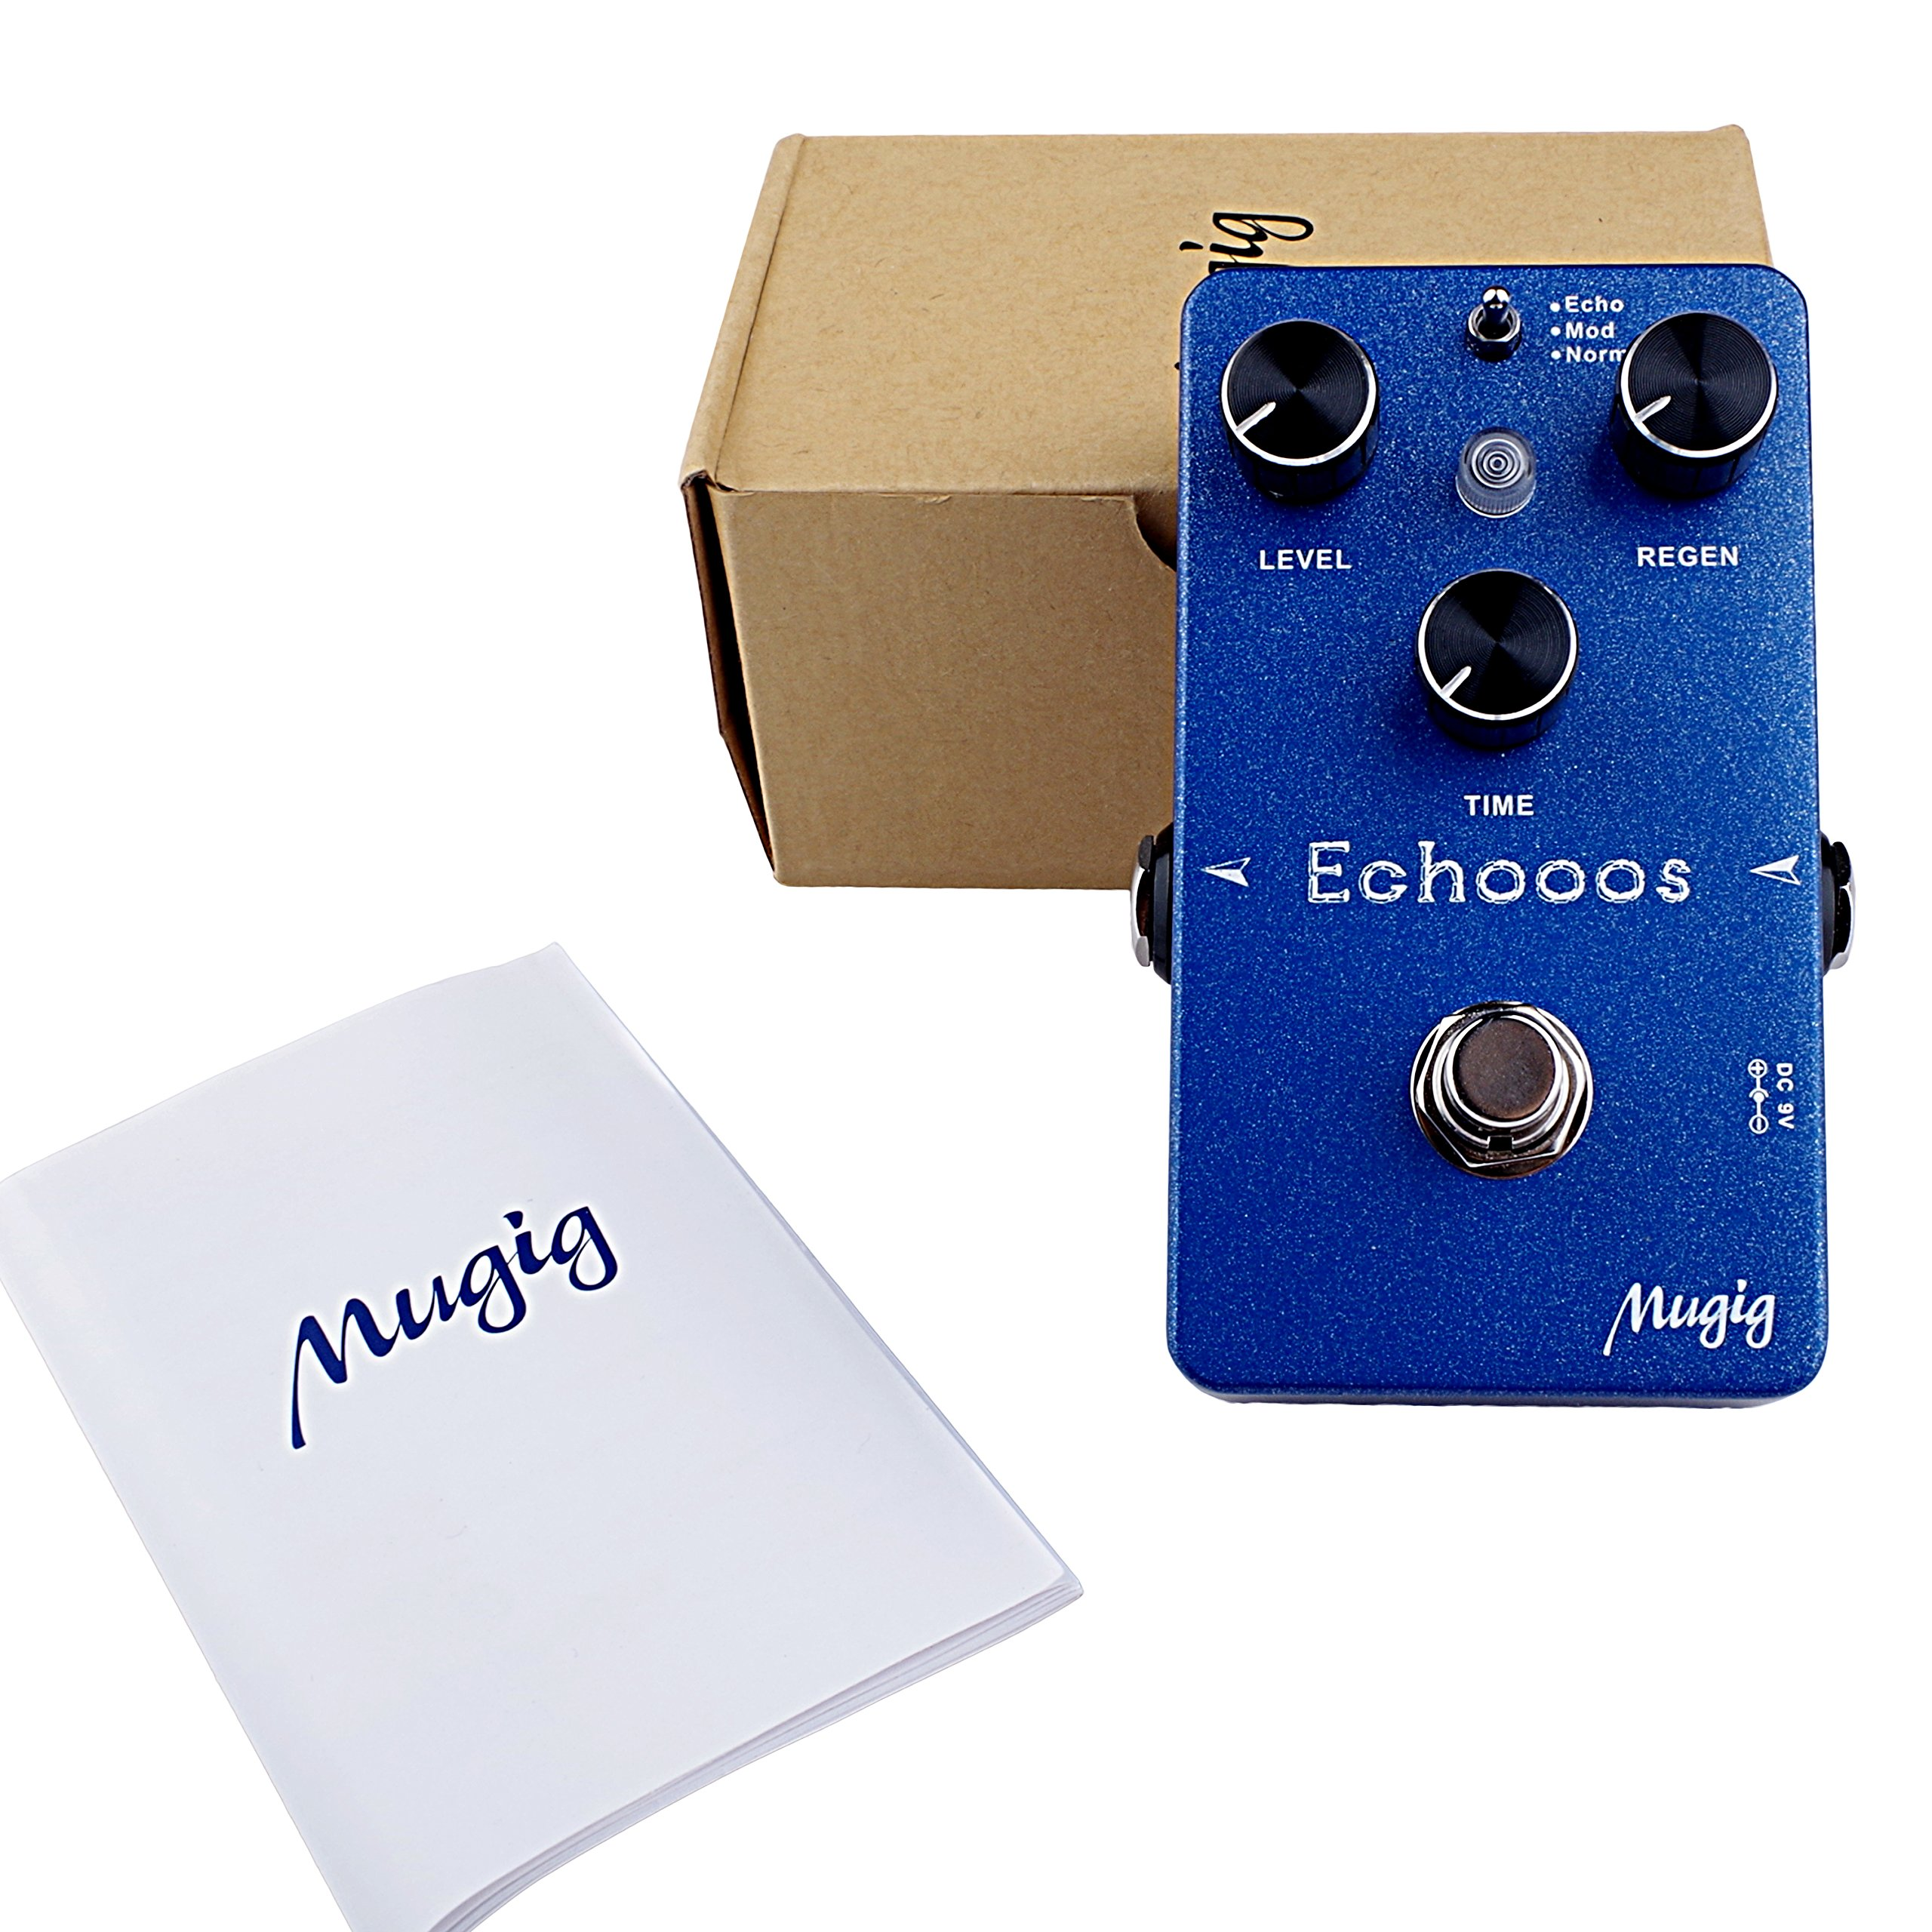 Mugig Digital Delay Guitar Effects Pedal , Three Modes, Echo/Mod/Normal, True Bypass